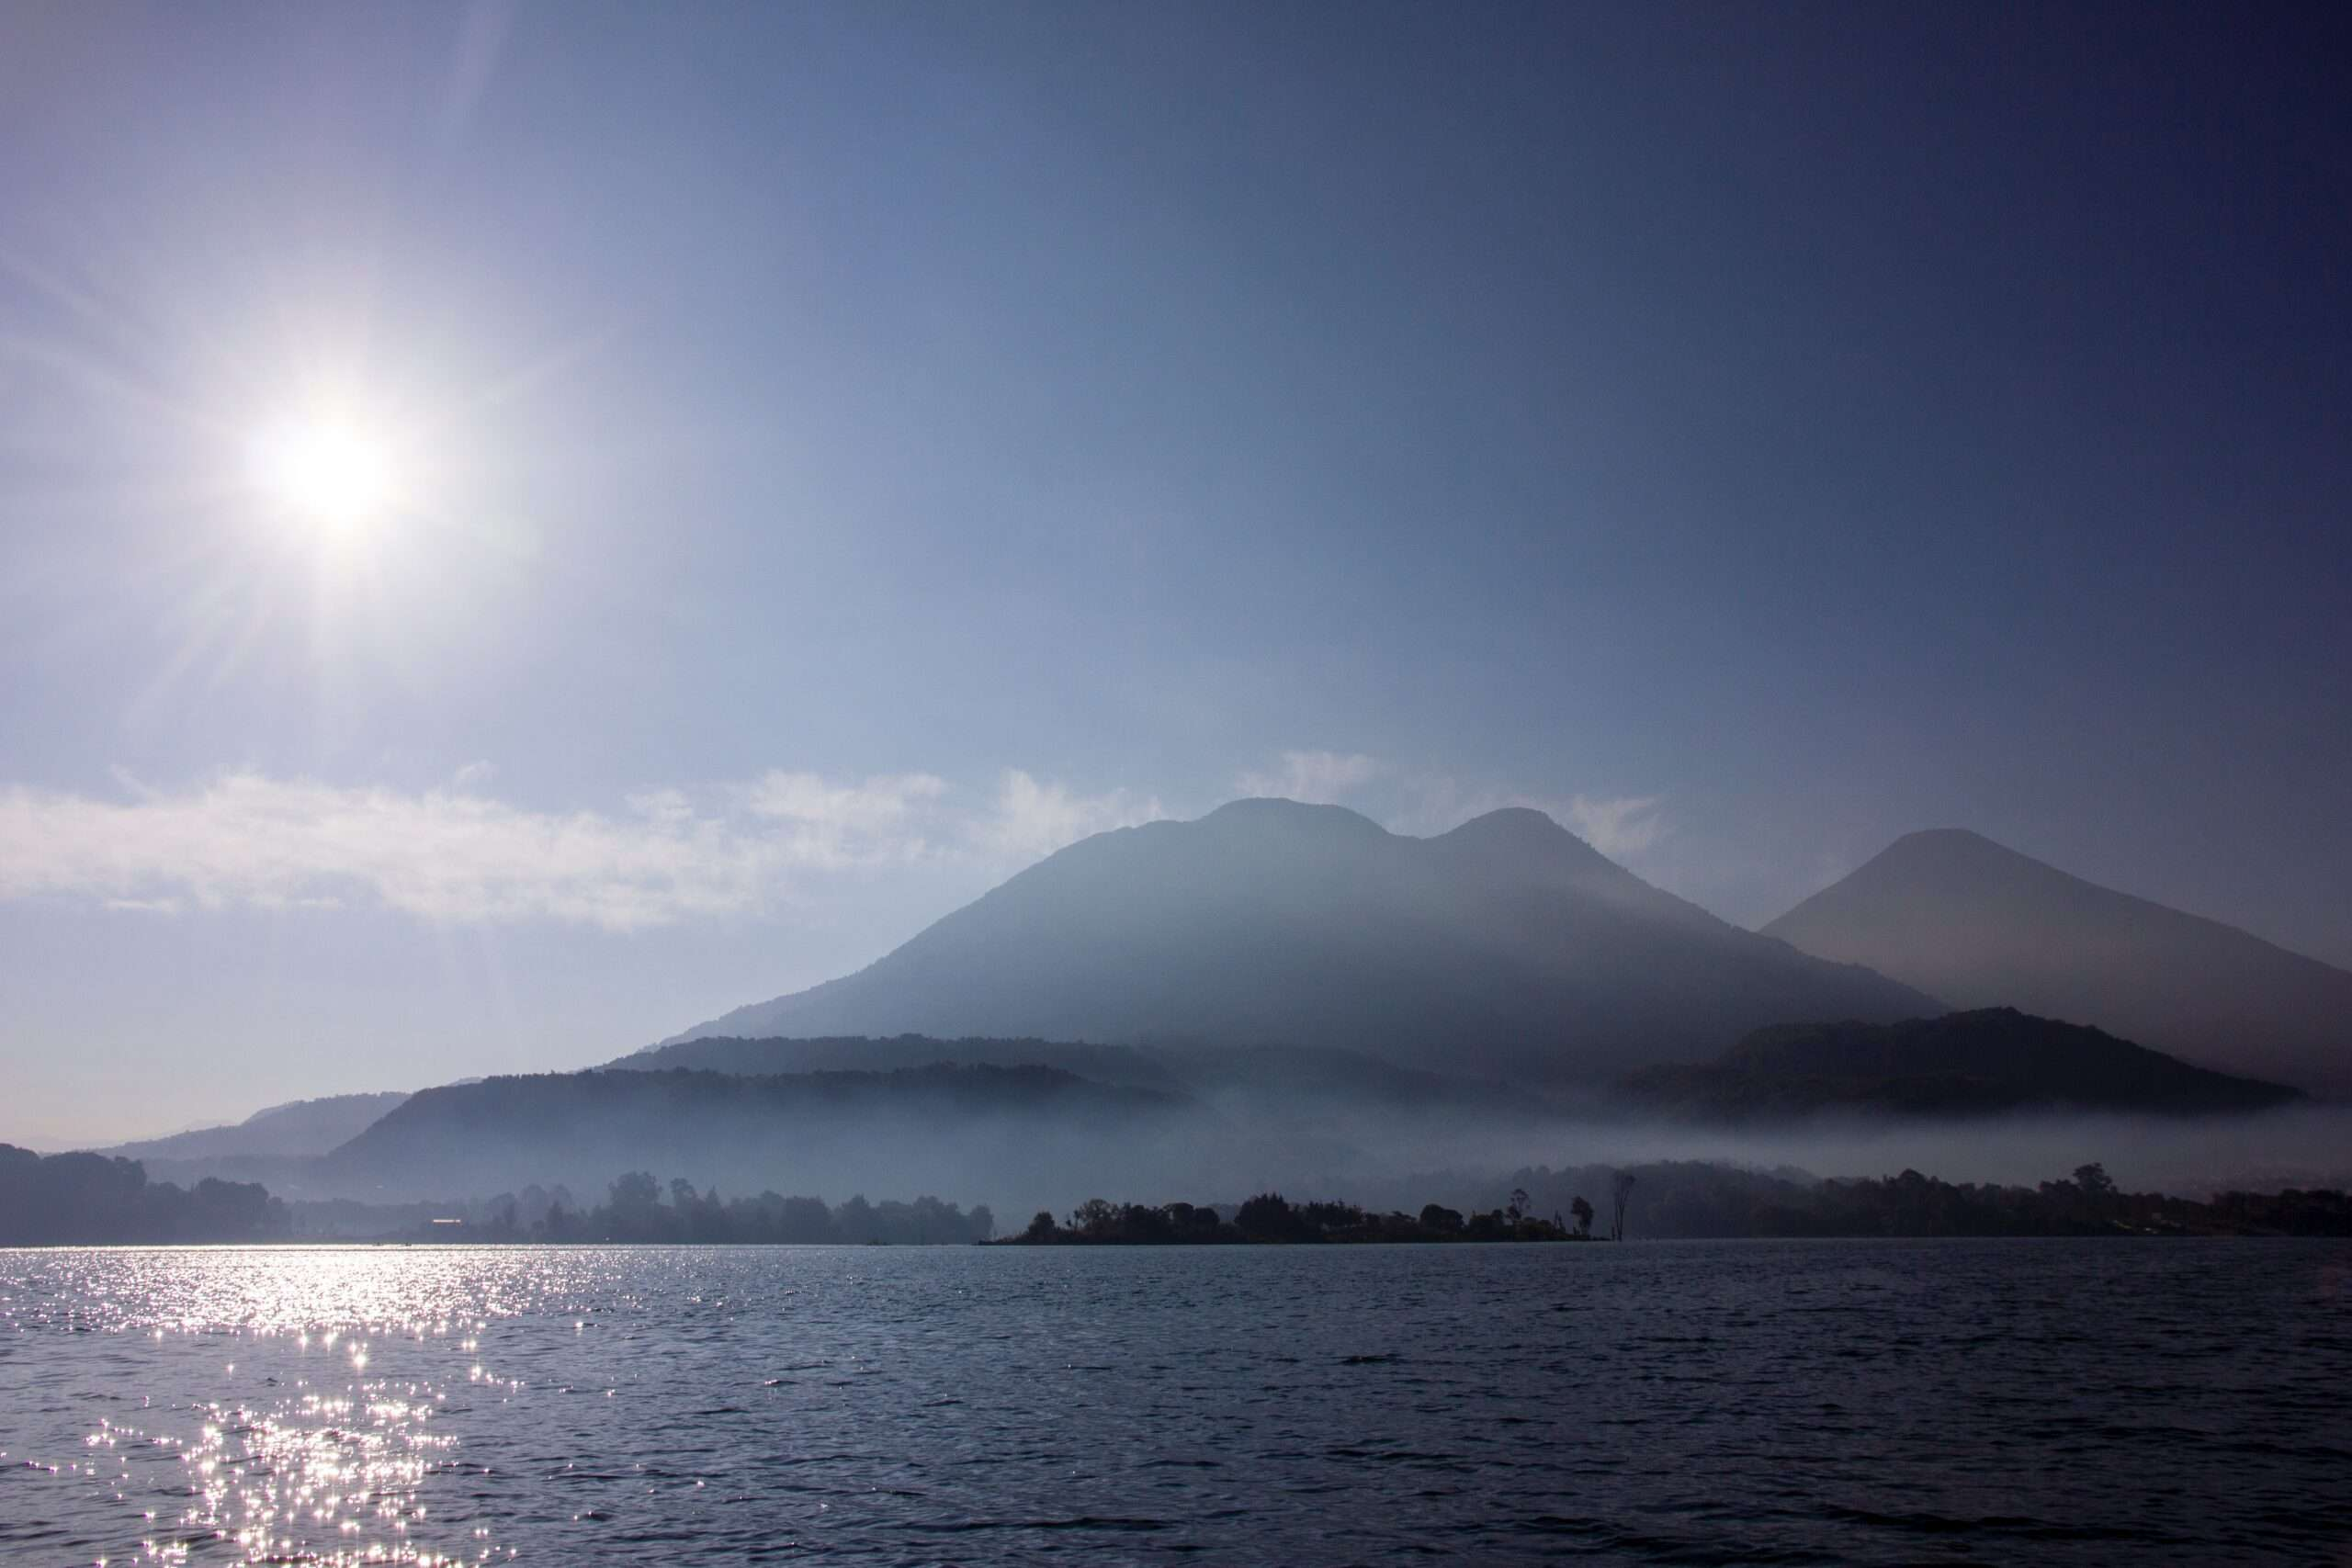 sun high in the sky over the volcano and water at Lake Atitlan